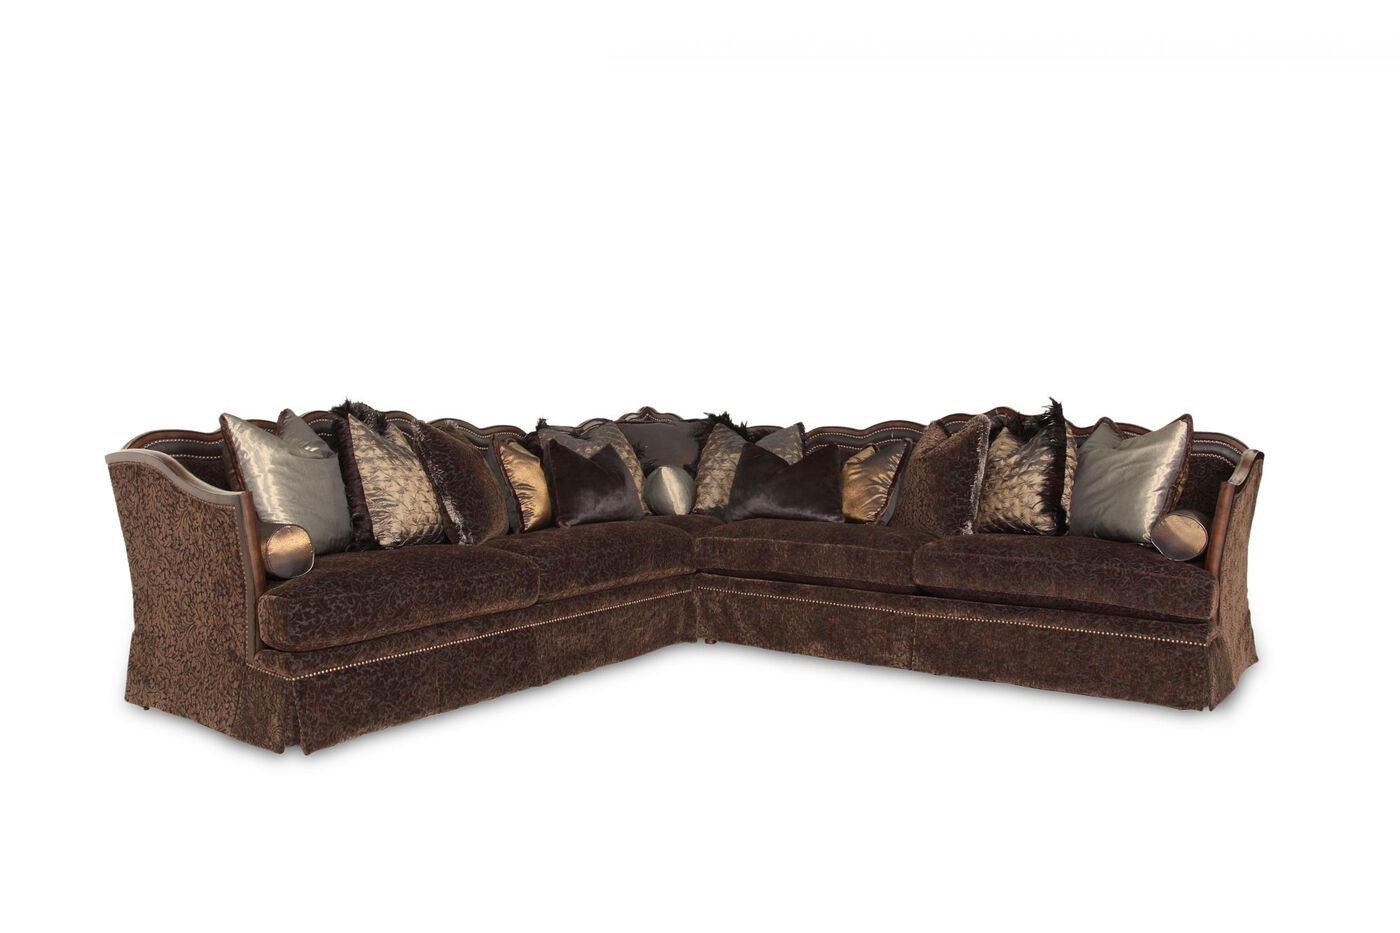 Three piece traditional 215quot leaf patterned sectional in for 3 piece brown sectional sofa